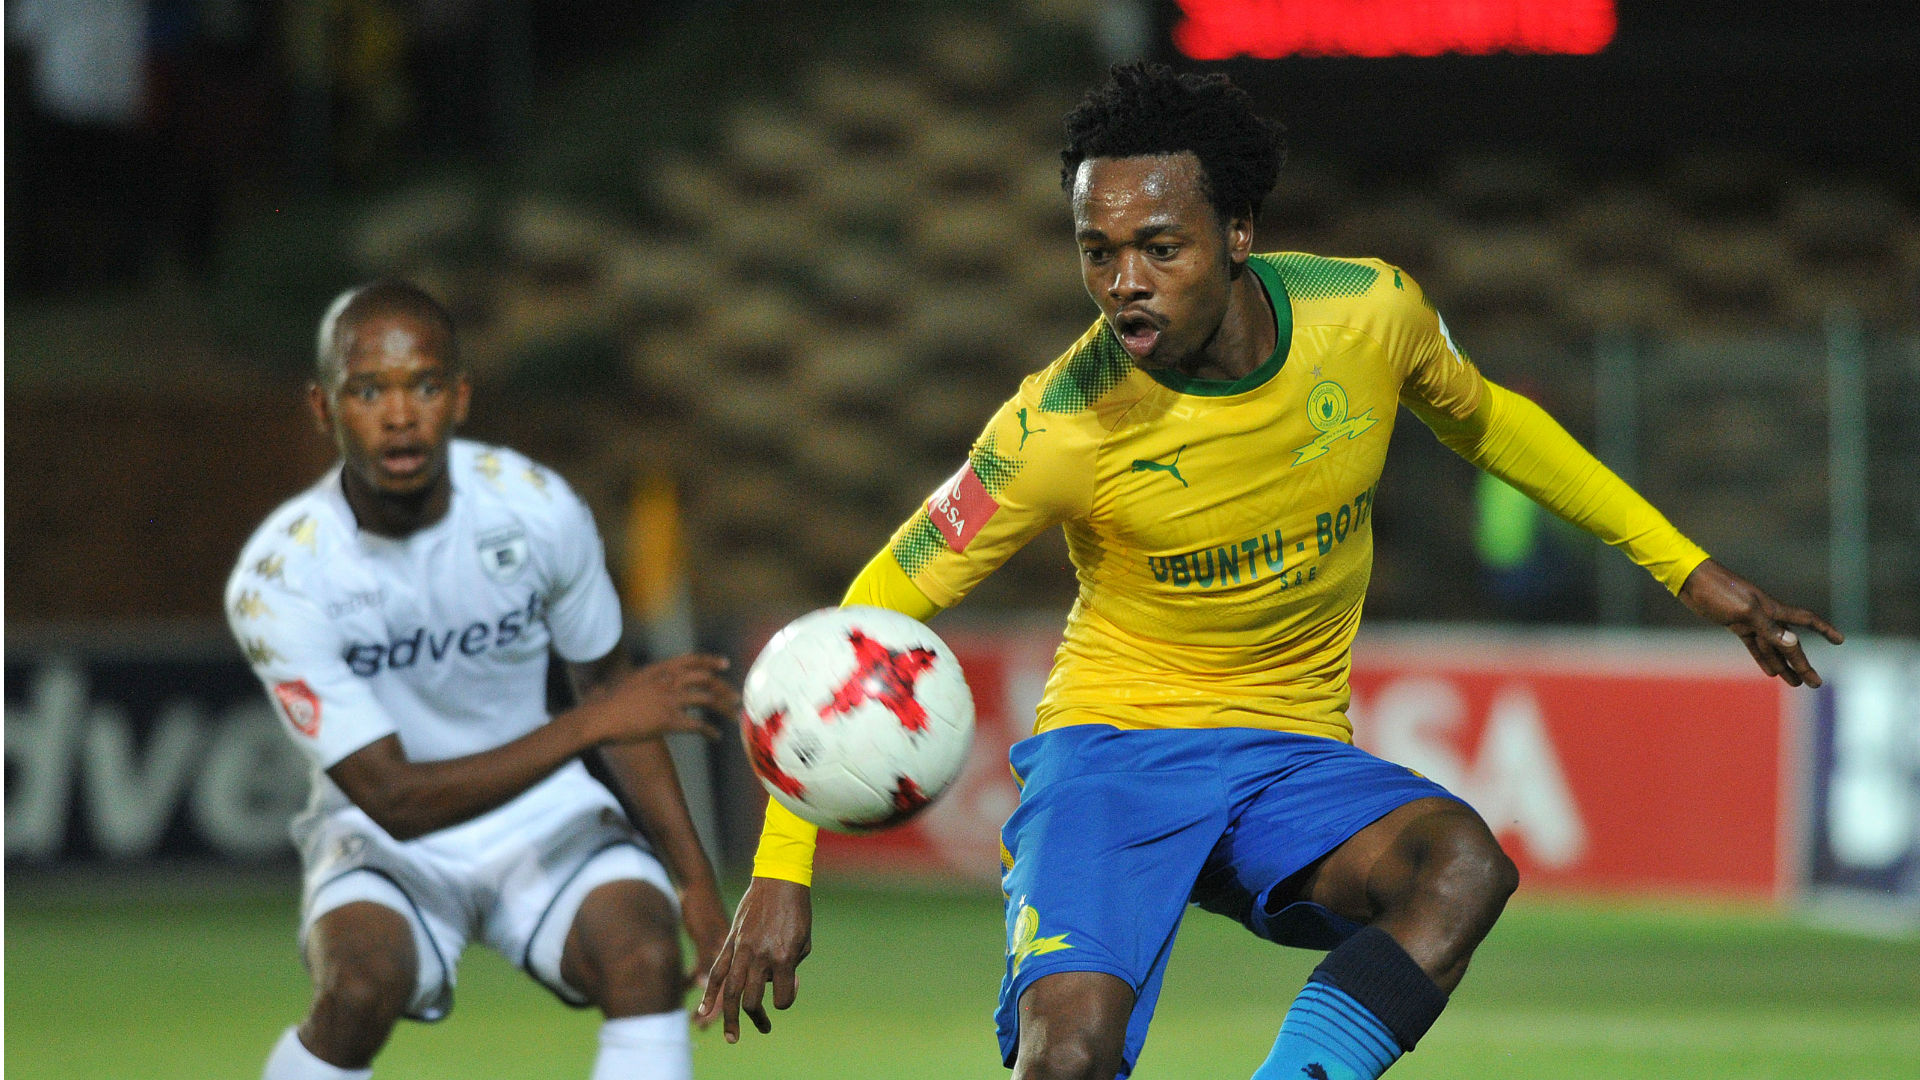 Percy Tau of Sundowns and Ntshangase of Bidvest Wits